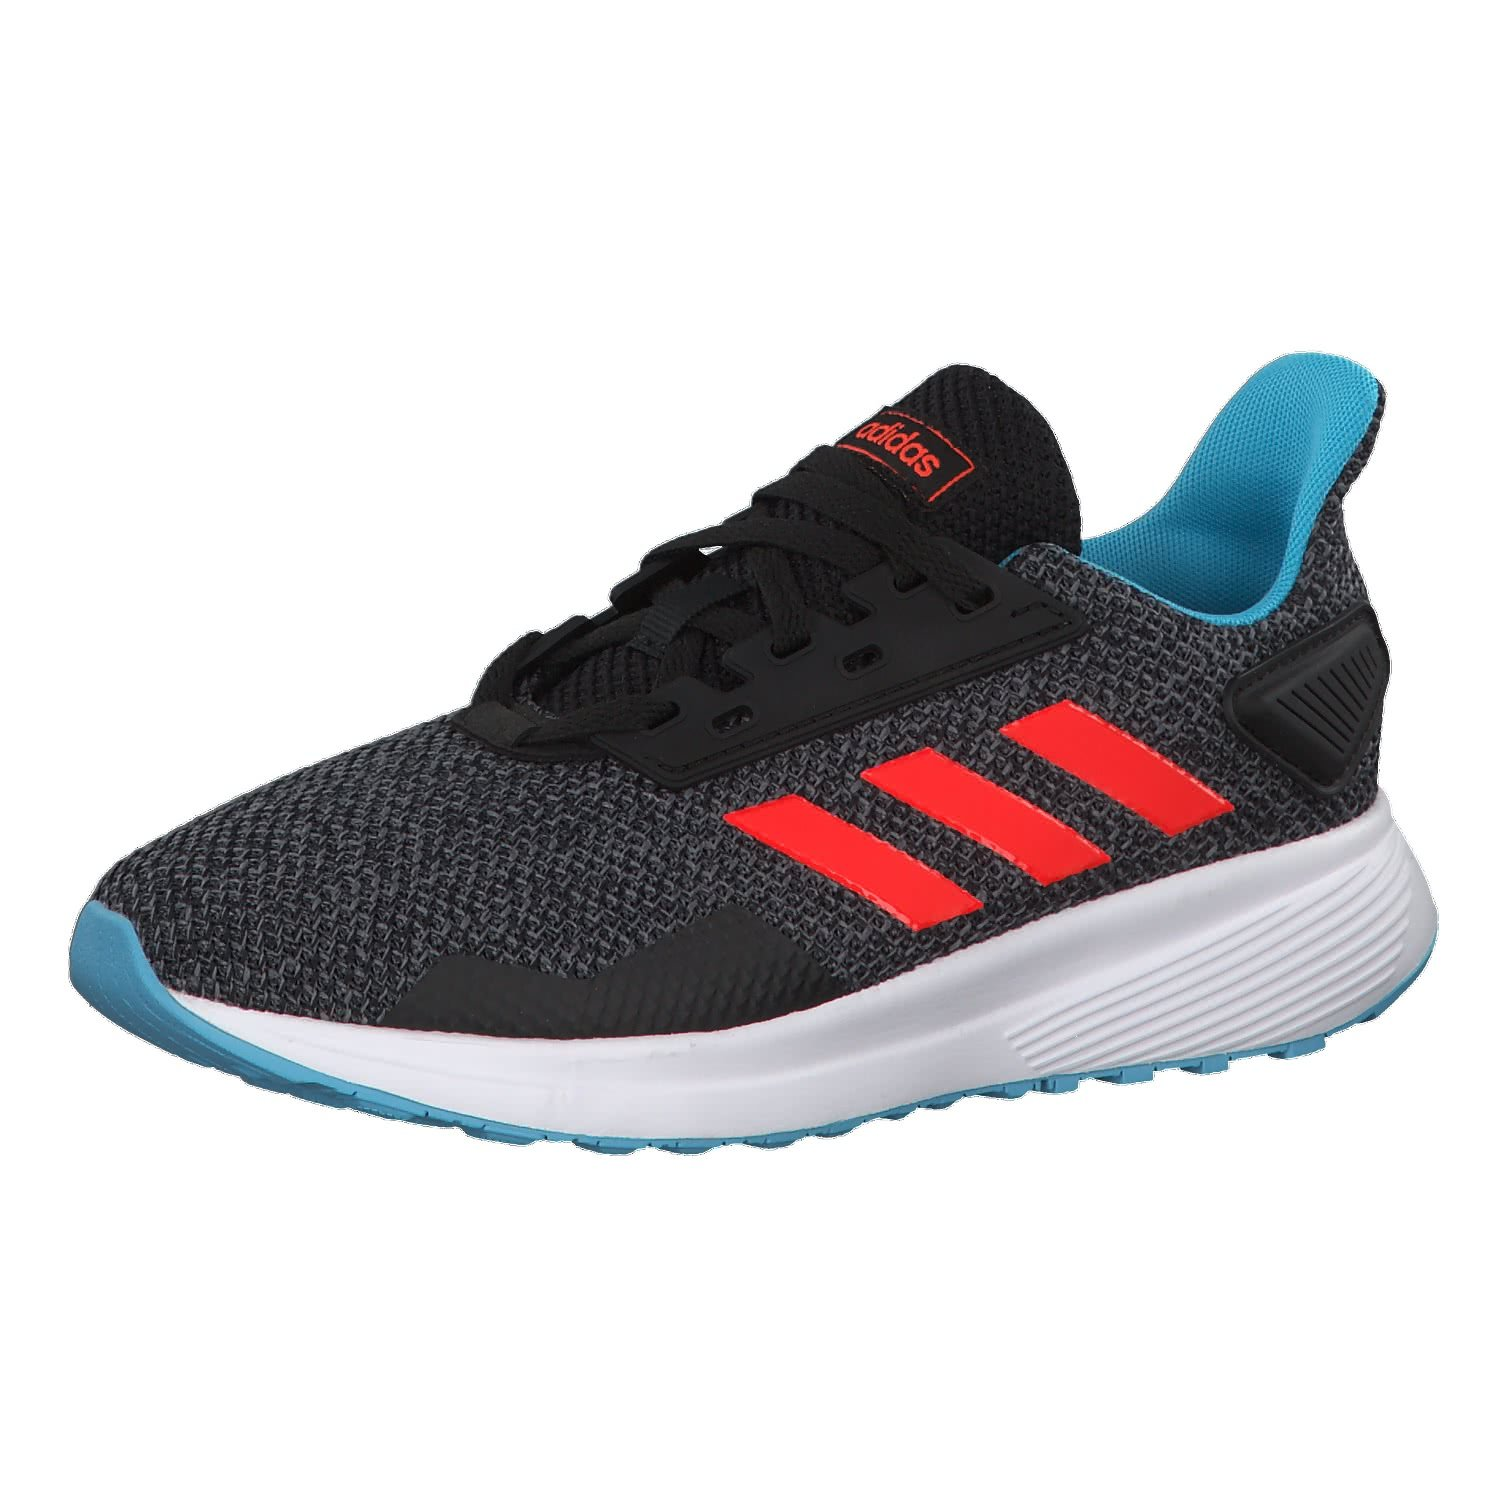 adidas Duramo 9 Trainingsschuh Kinder adidas Performance